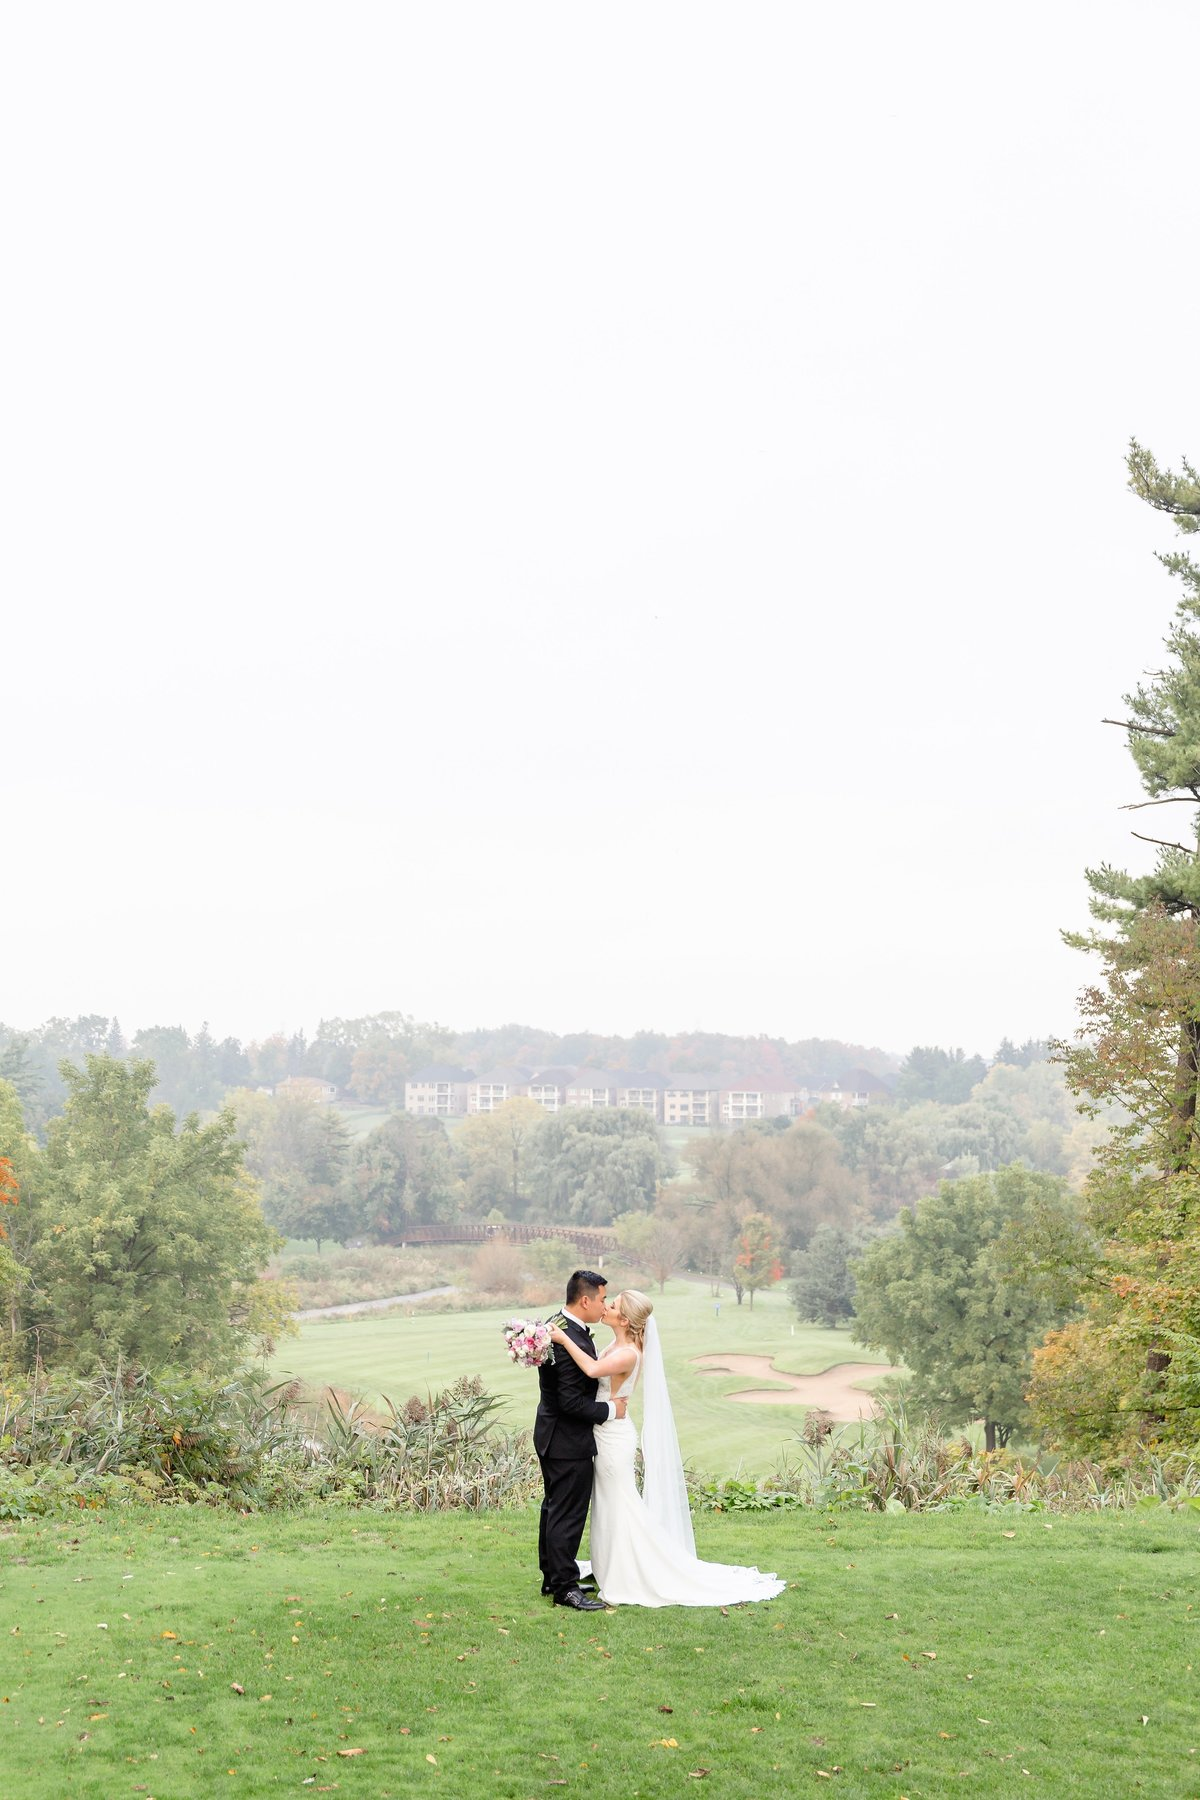 Classic Romantic Candid London Ontario Wedding Photographer | Dylan and Sandra Photography 006